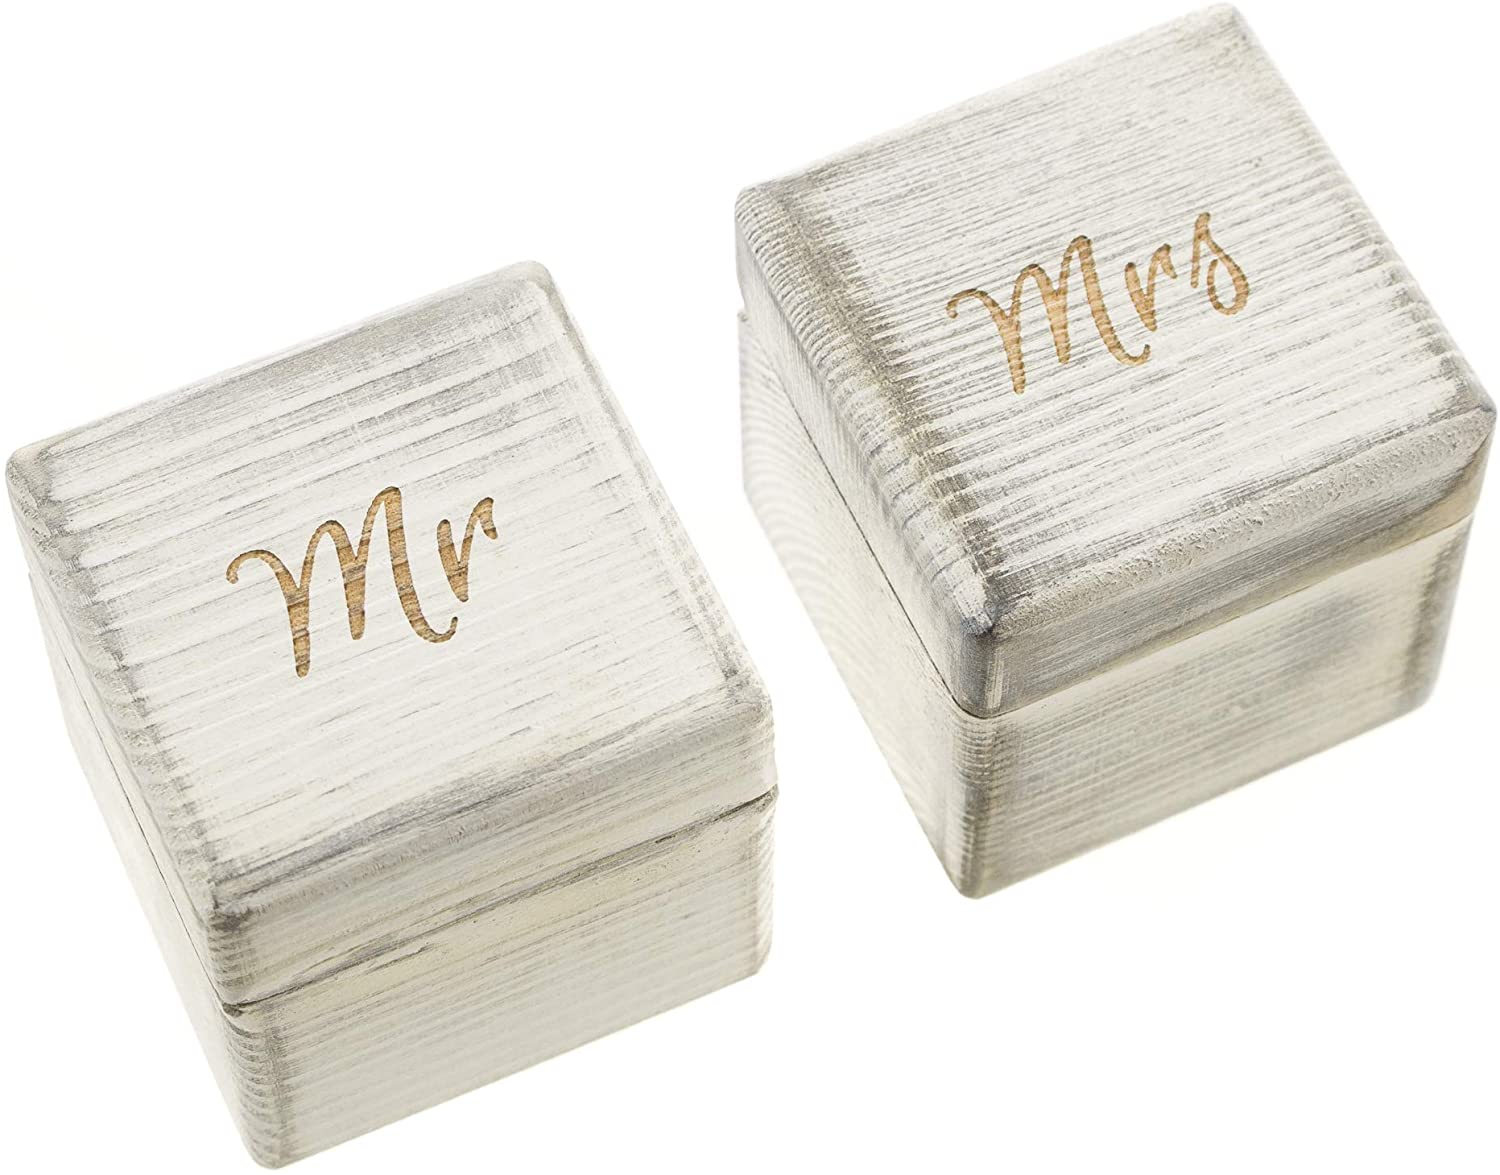 Mr & Mrs Ring Box Set - Antique White